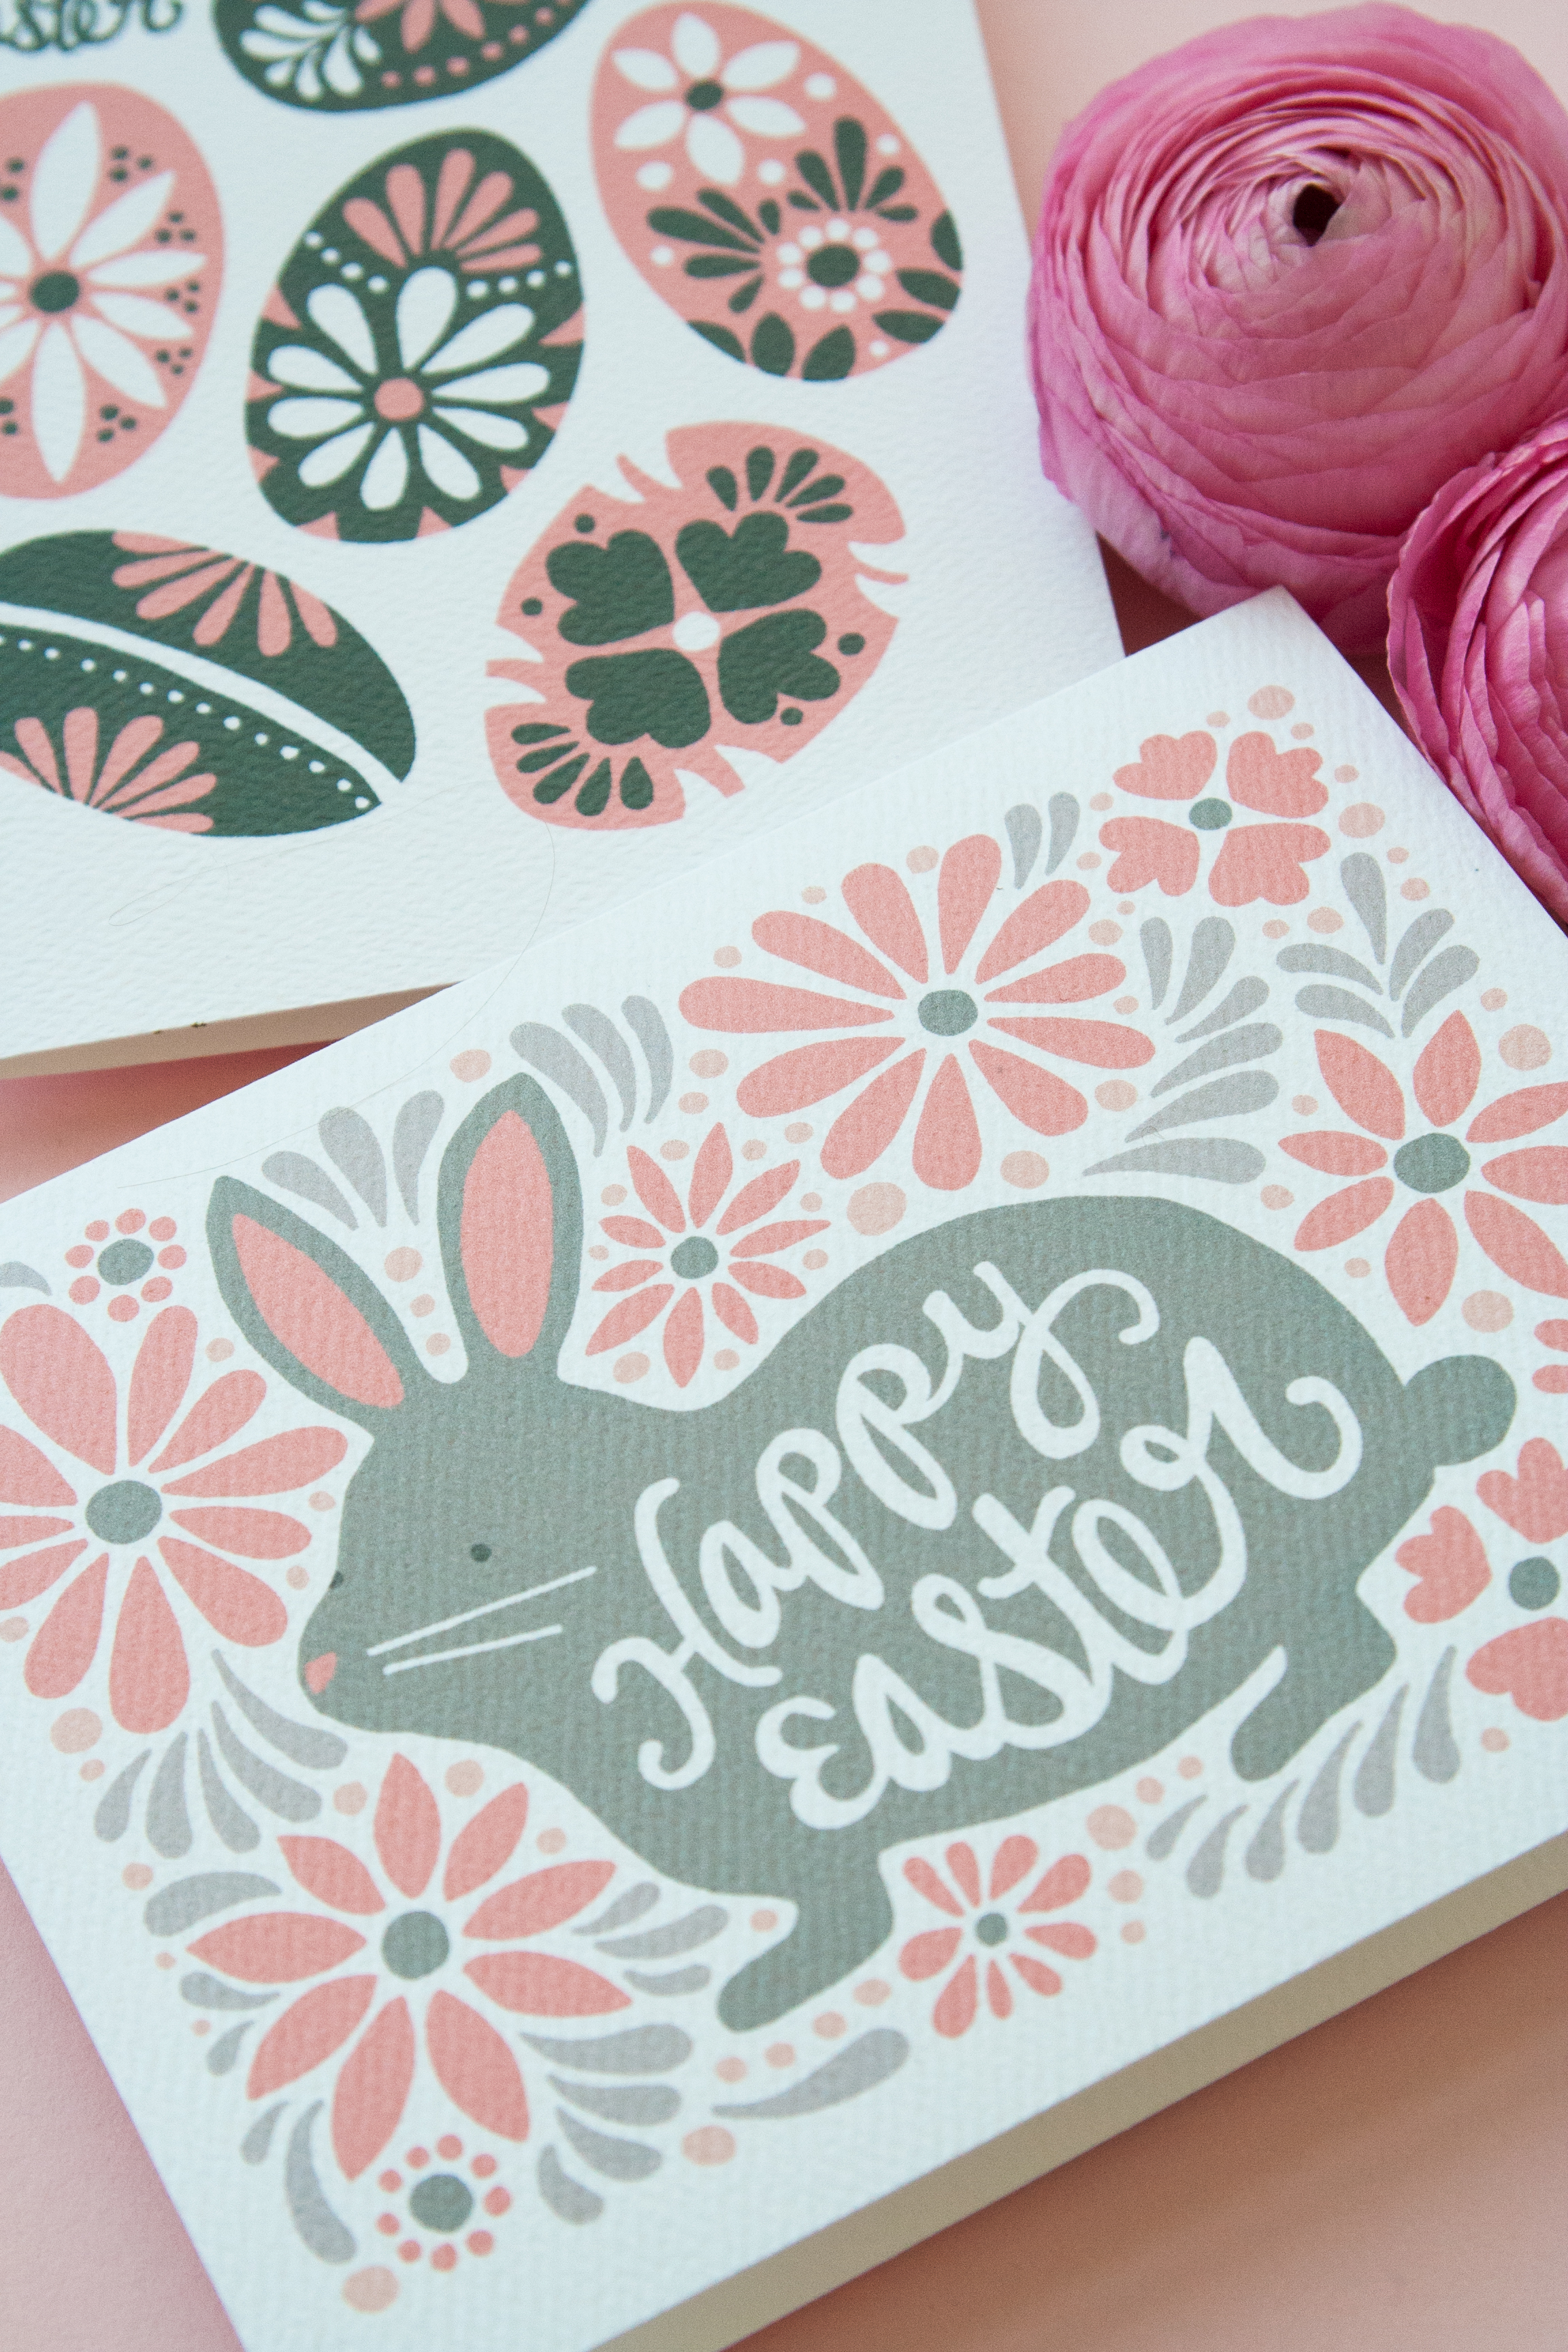 Orange_Paper_Shoppe_Easter_Bunny_Greeting_Card_Detail.jpg